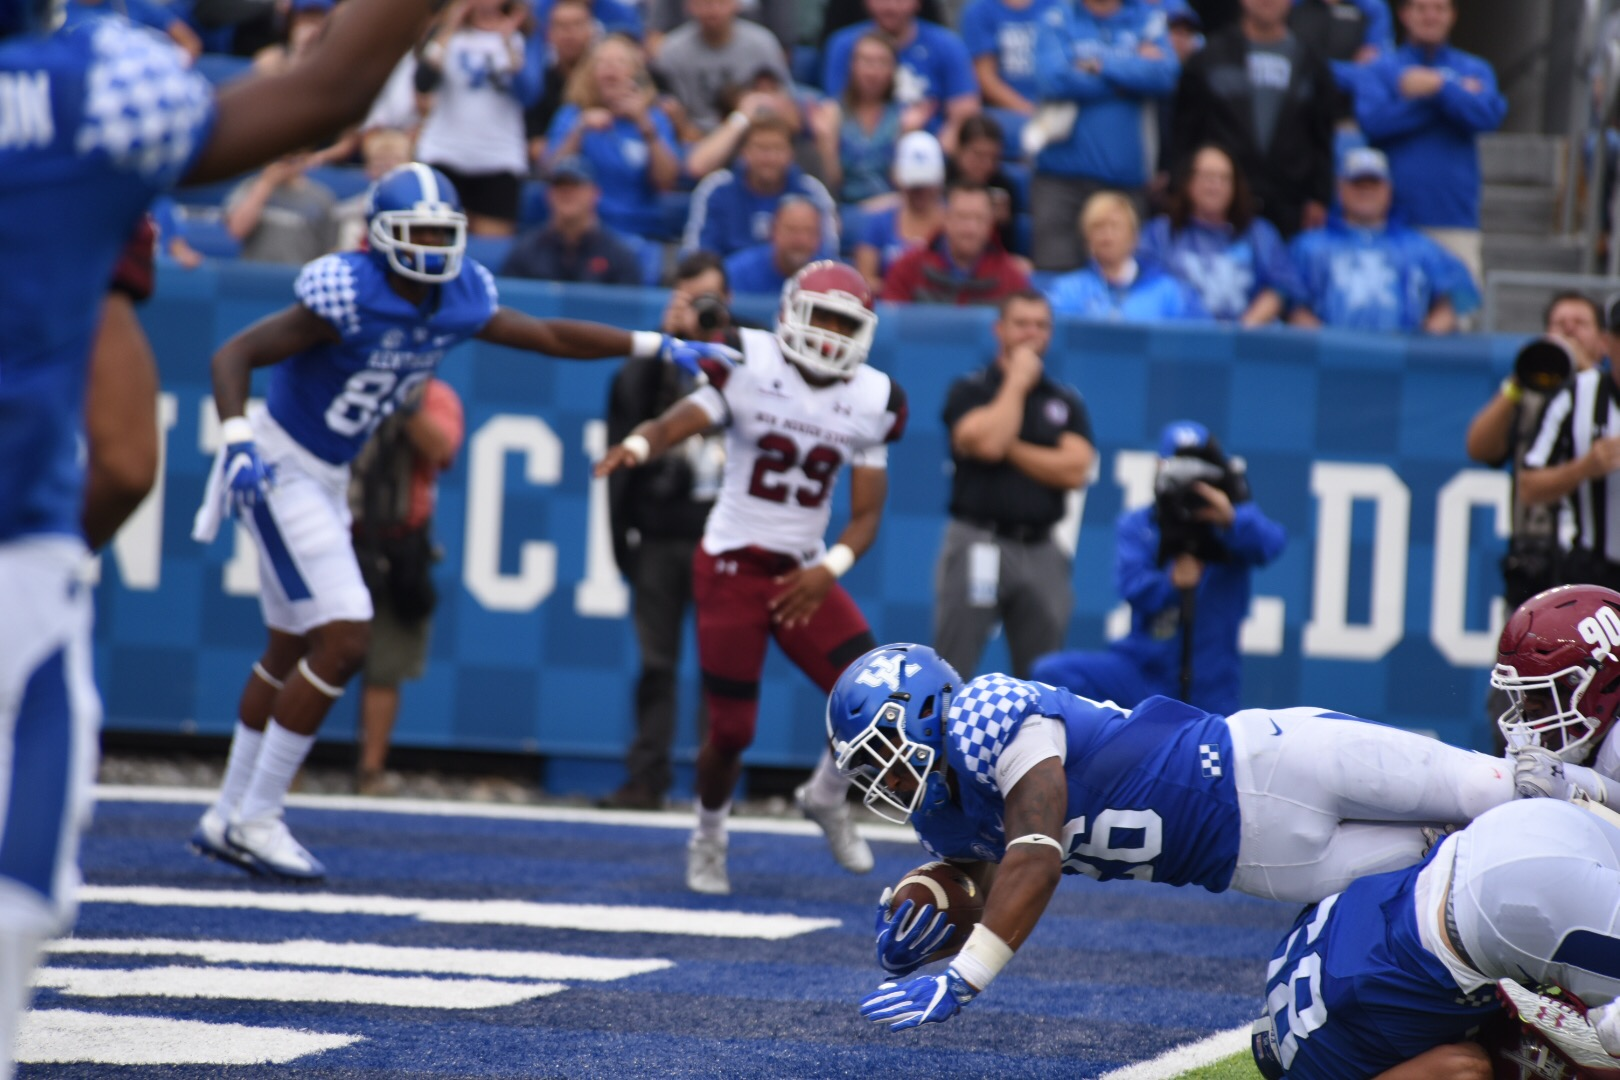 One of Snell's 4 touchdowns. Photo by: Brandon Turner